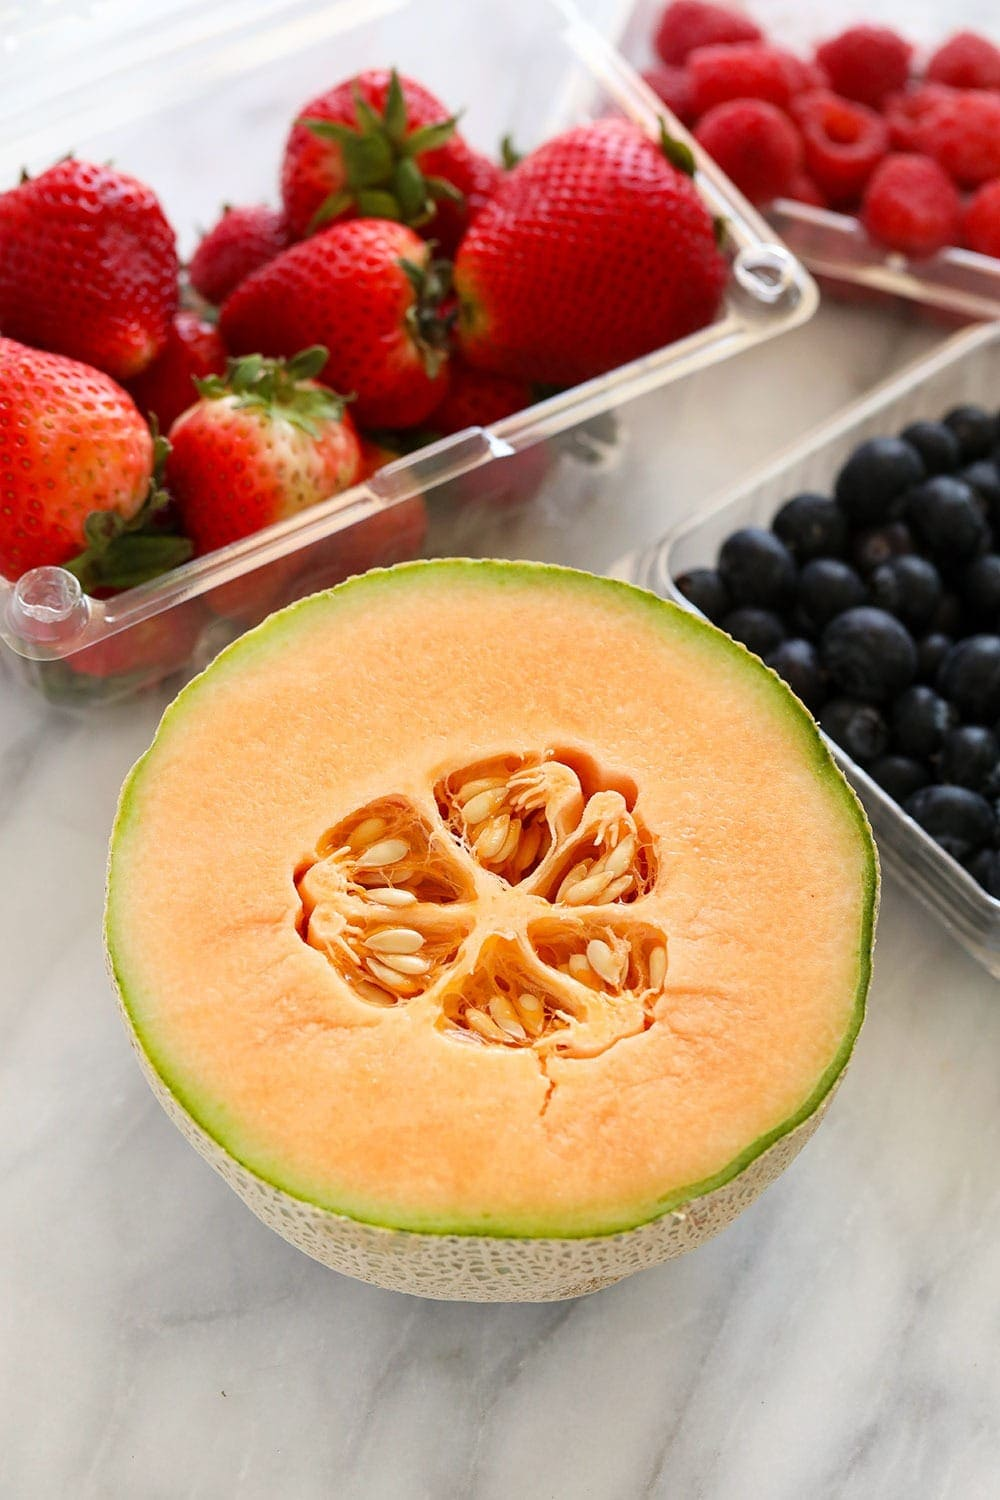 cantaloupe, strawberries and blueberries ready to be used in a fruit salad